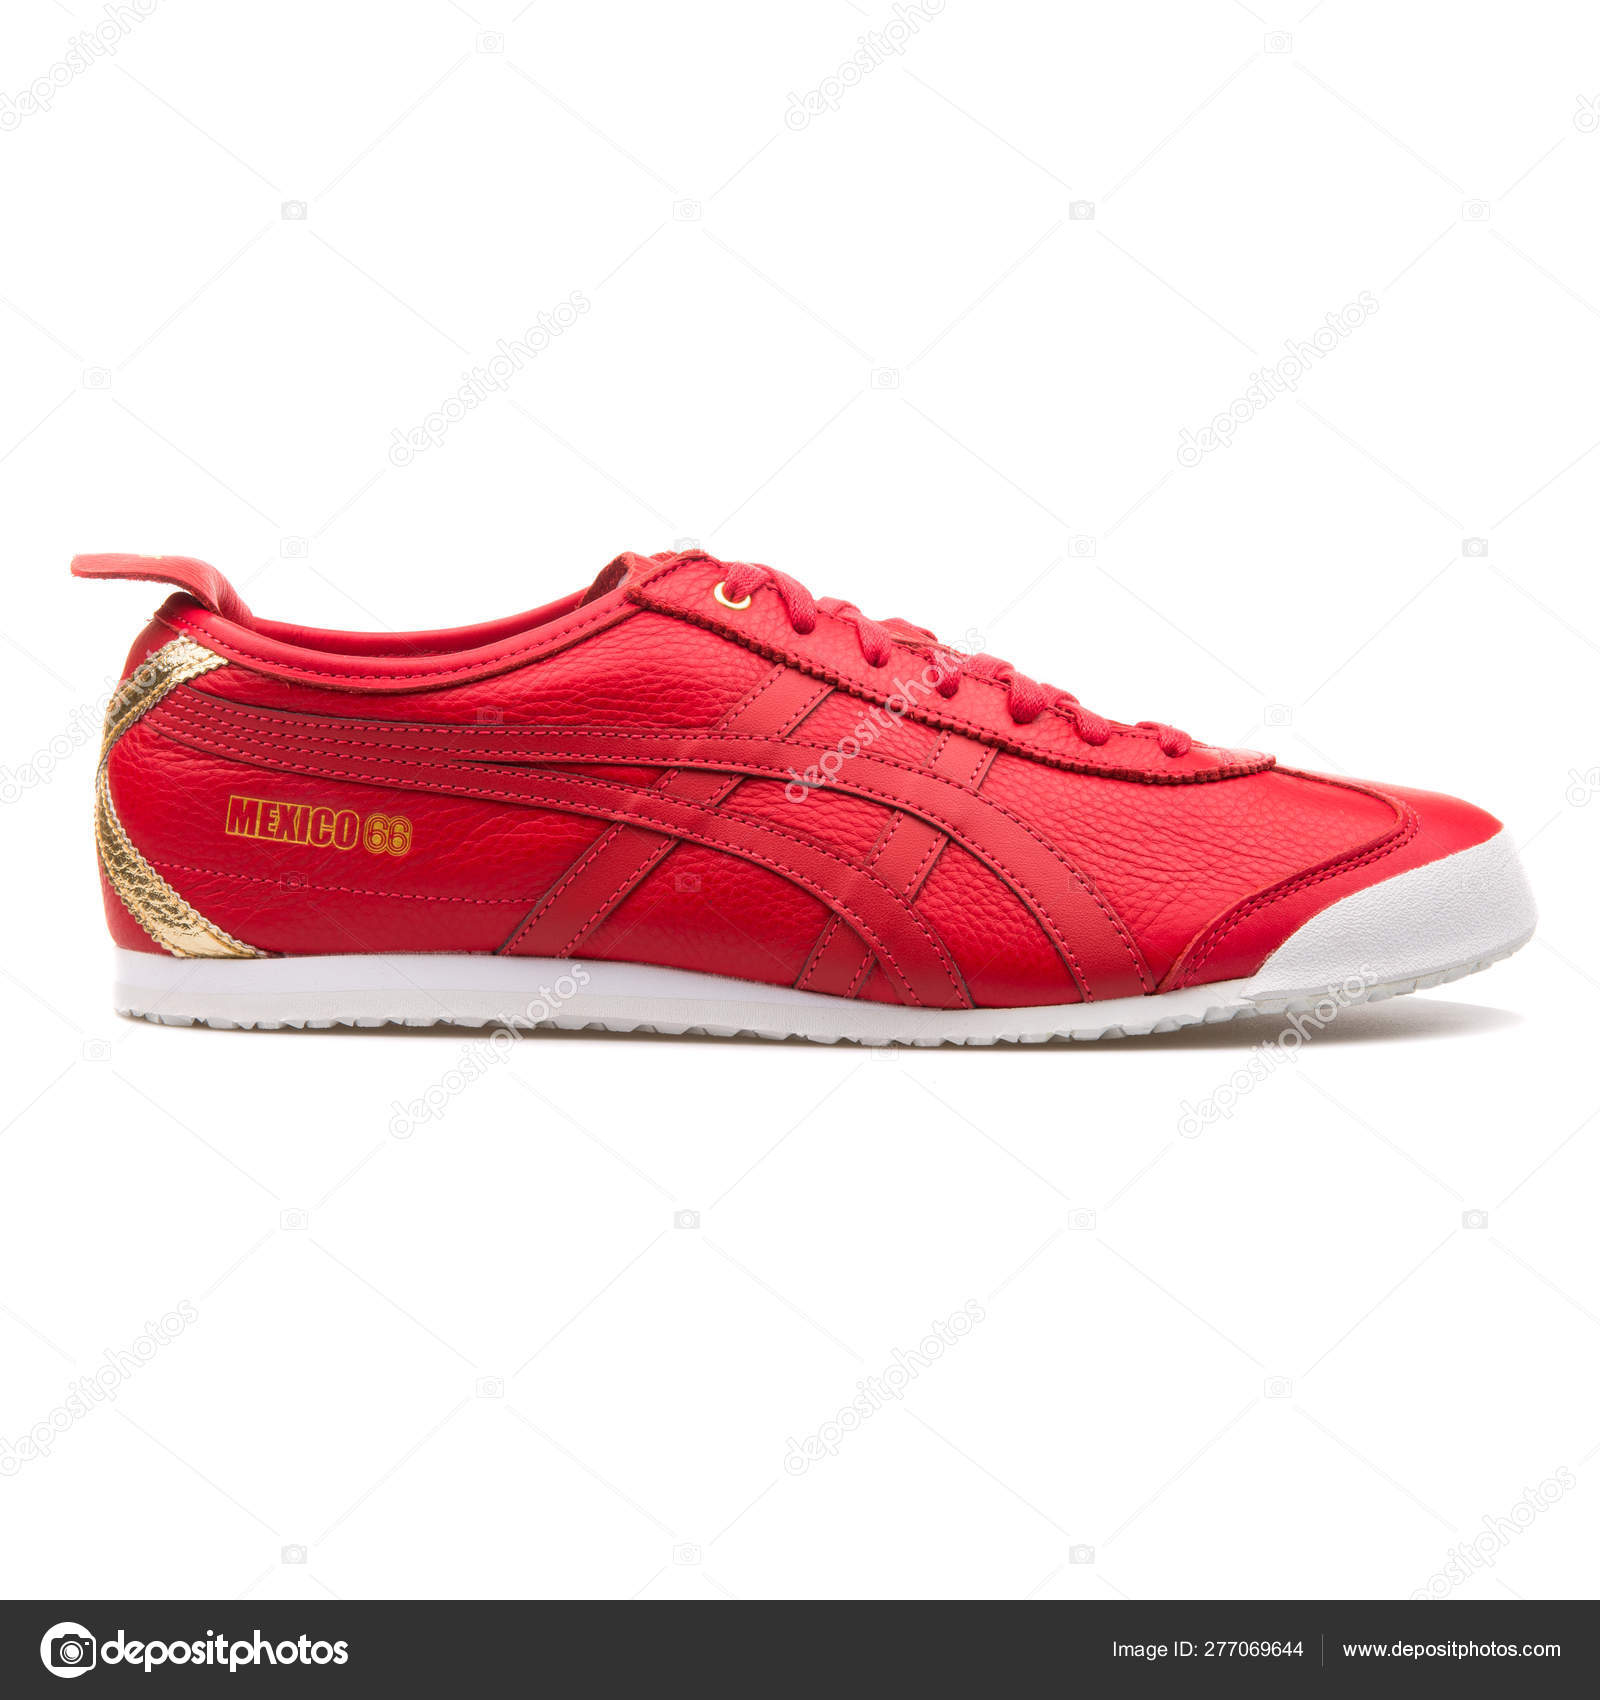 Onitsuka Tiger Mexico 66 red sneaker